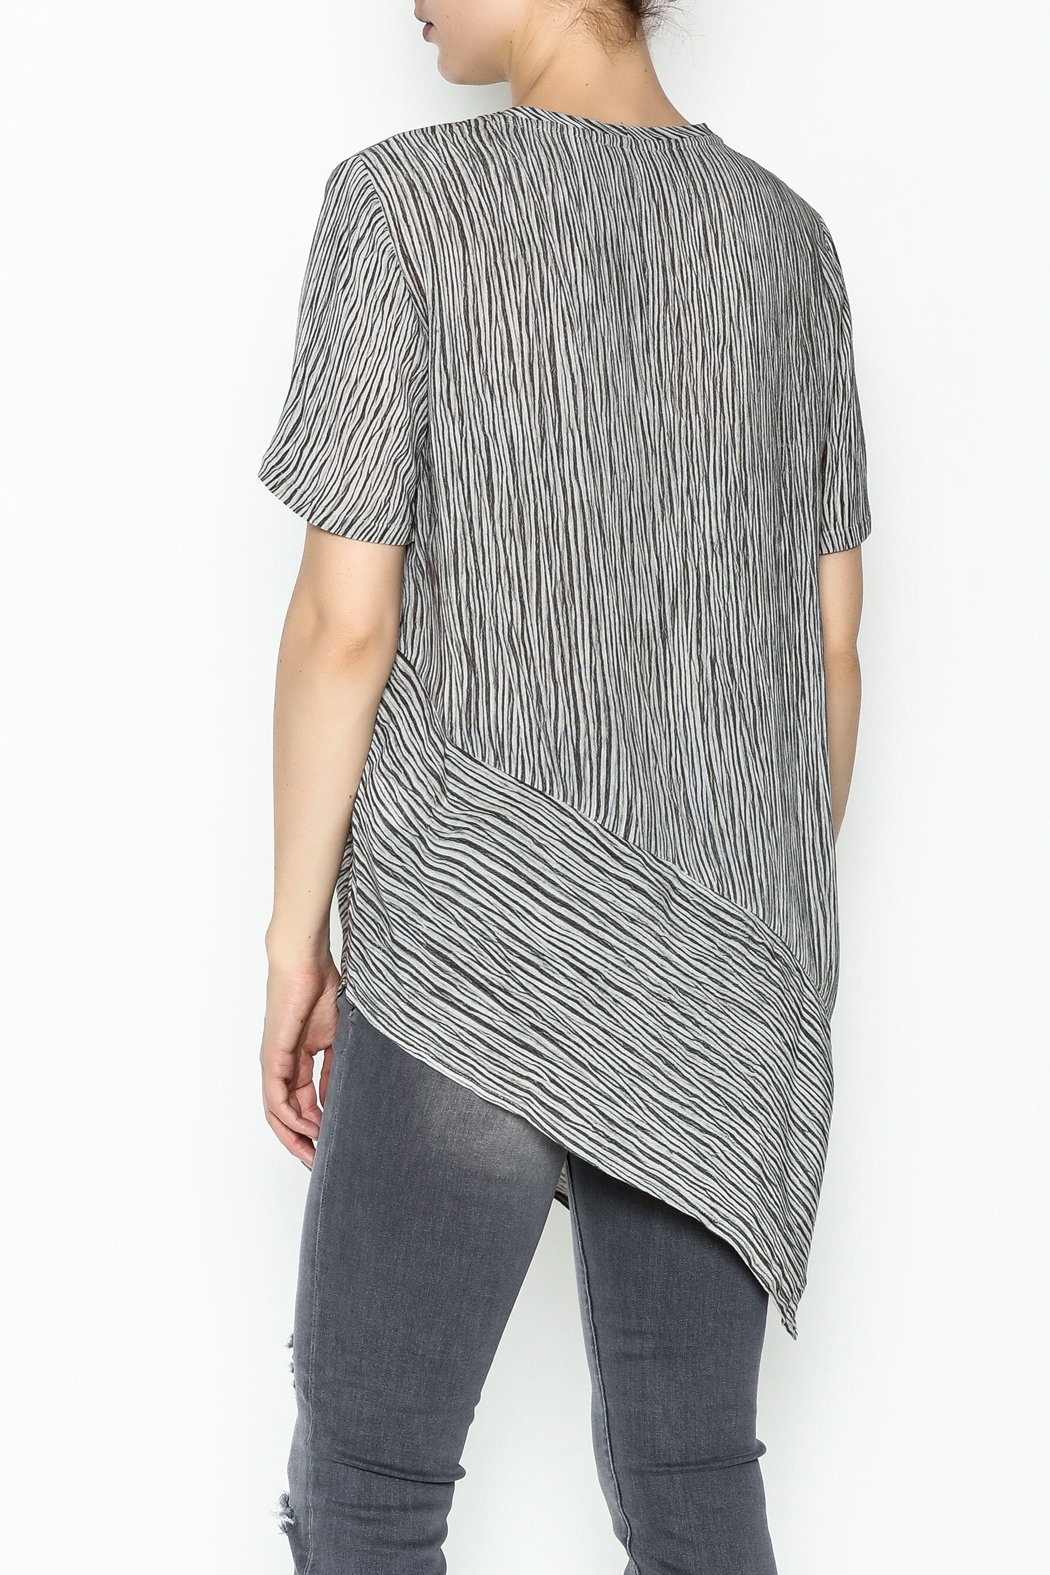 Ronen Chen Assymetrical Top - Back Cropped Image